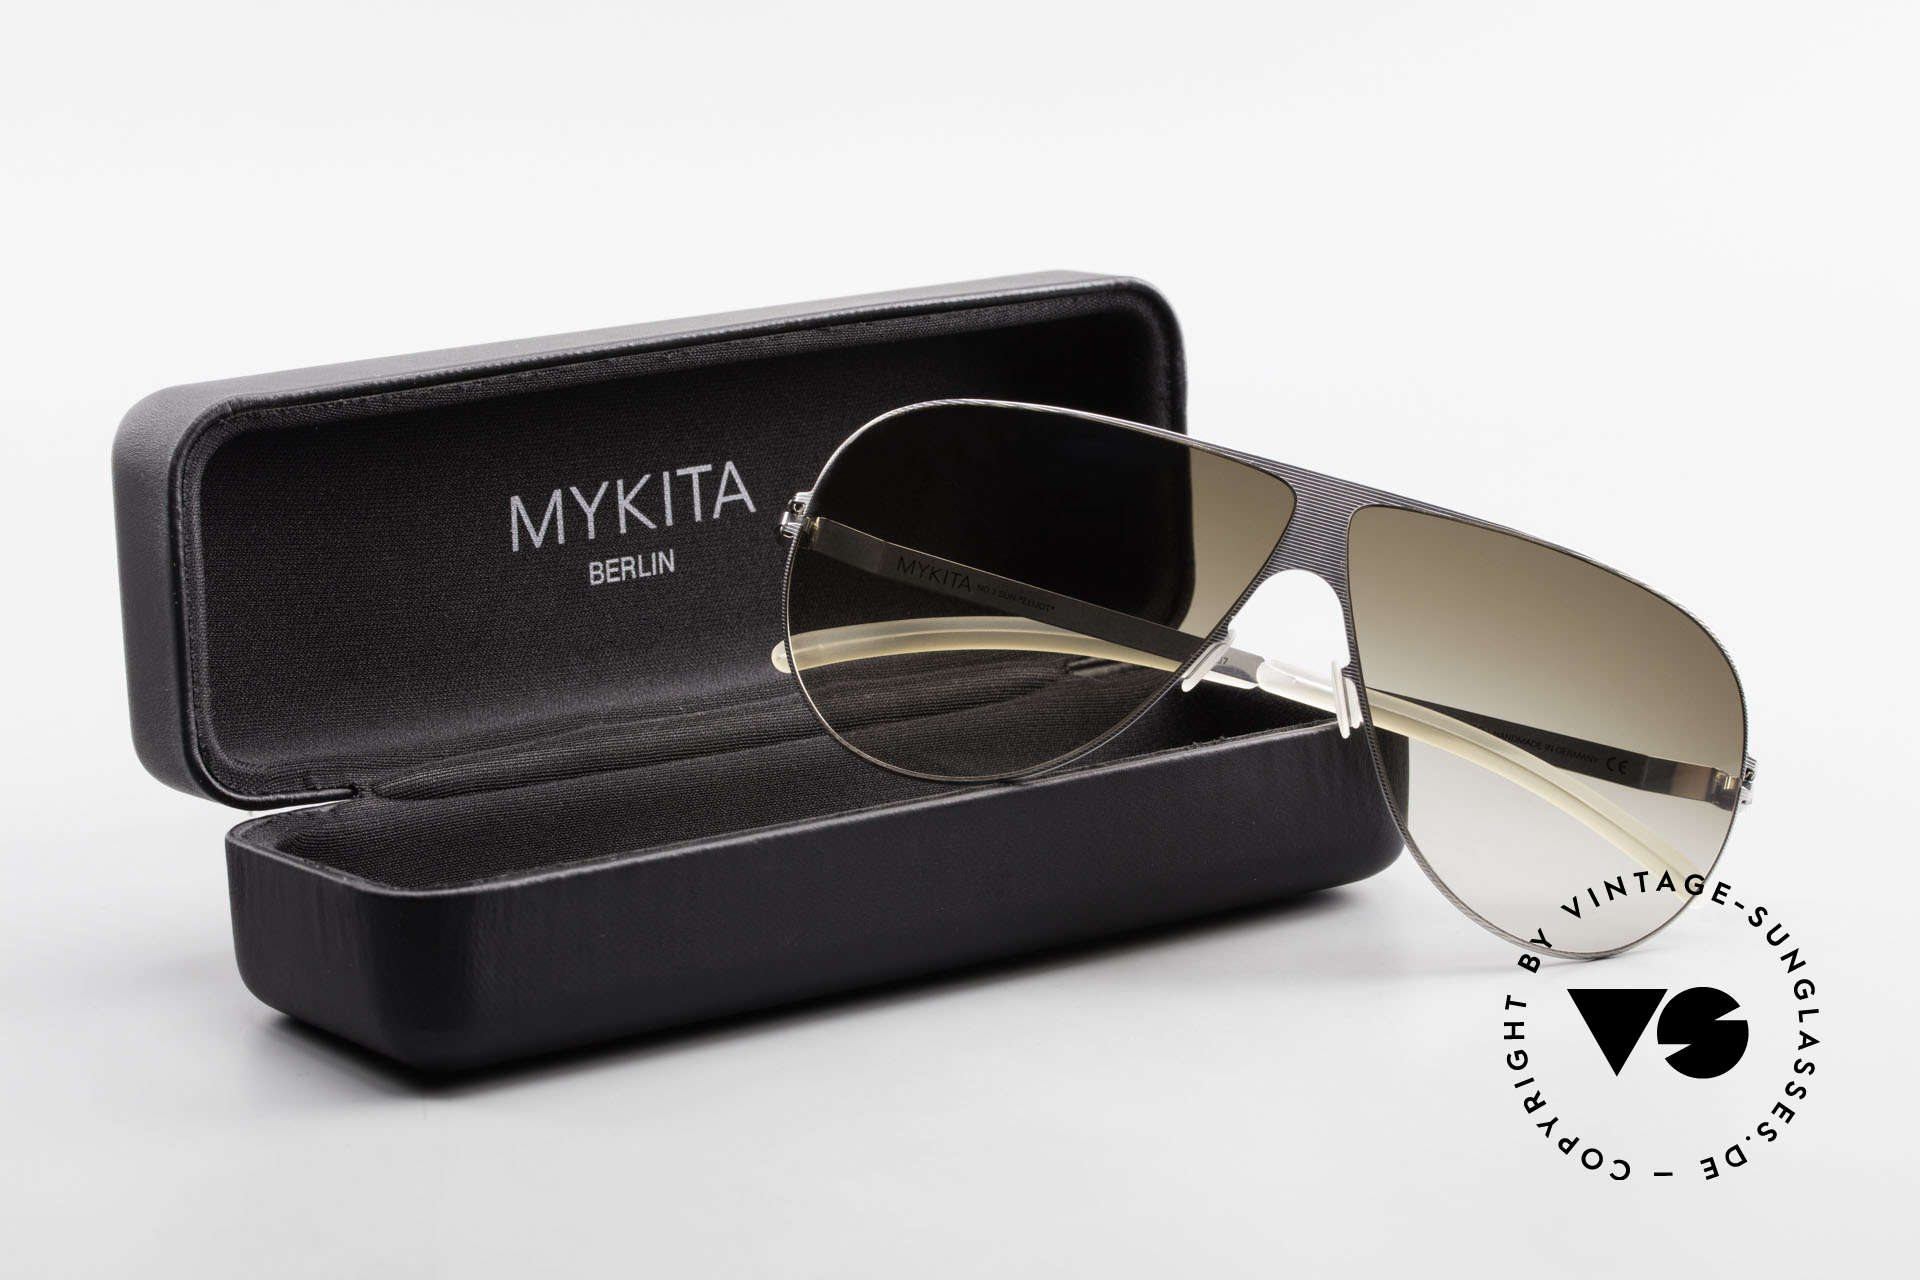 Mykita Elliot 2011 Tom Cruise Aviator Shades, Size: medium, Made for Men